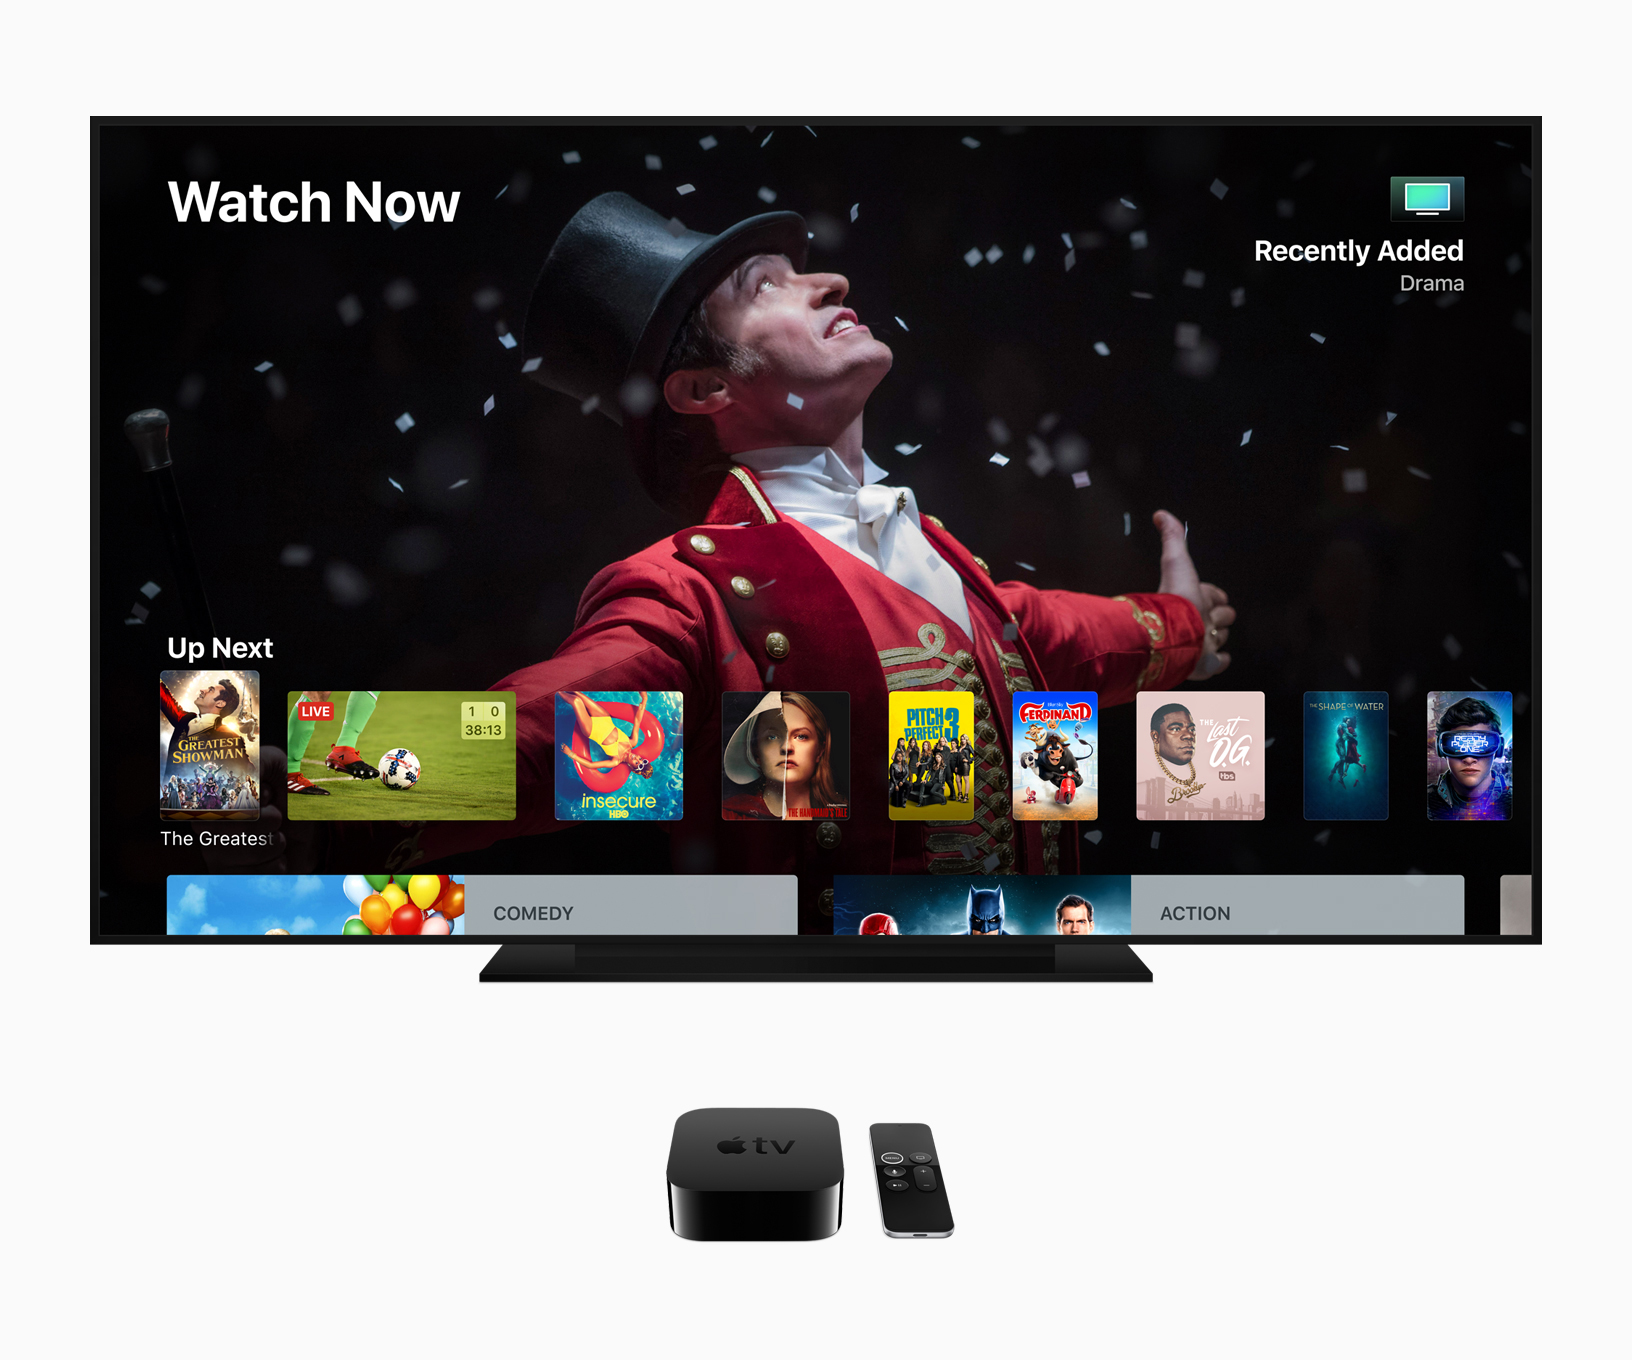 Apple_TV_4k_screen_06042018-1528181493